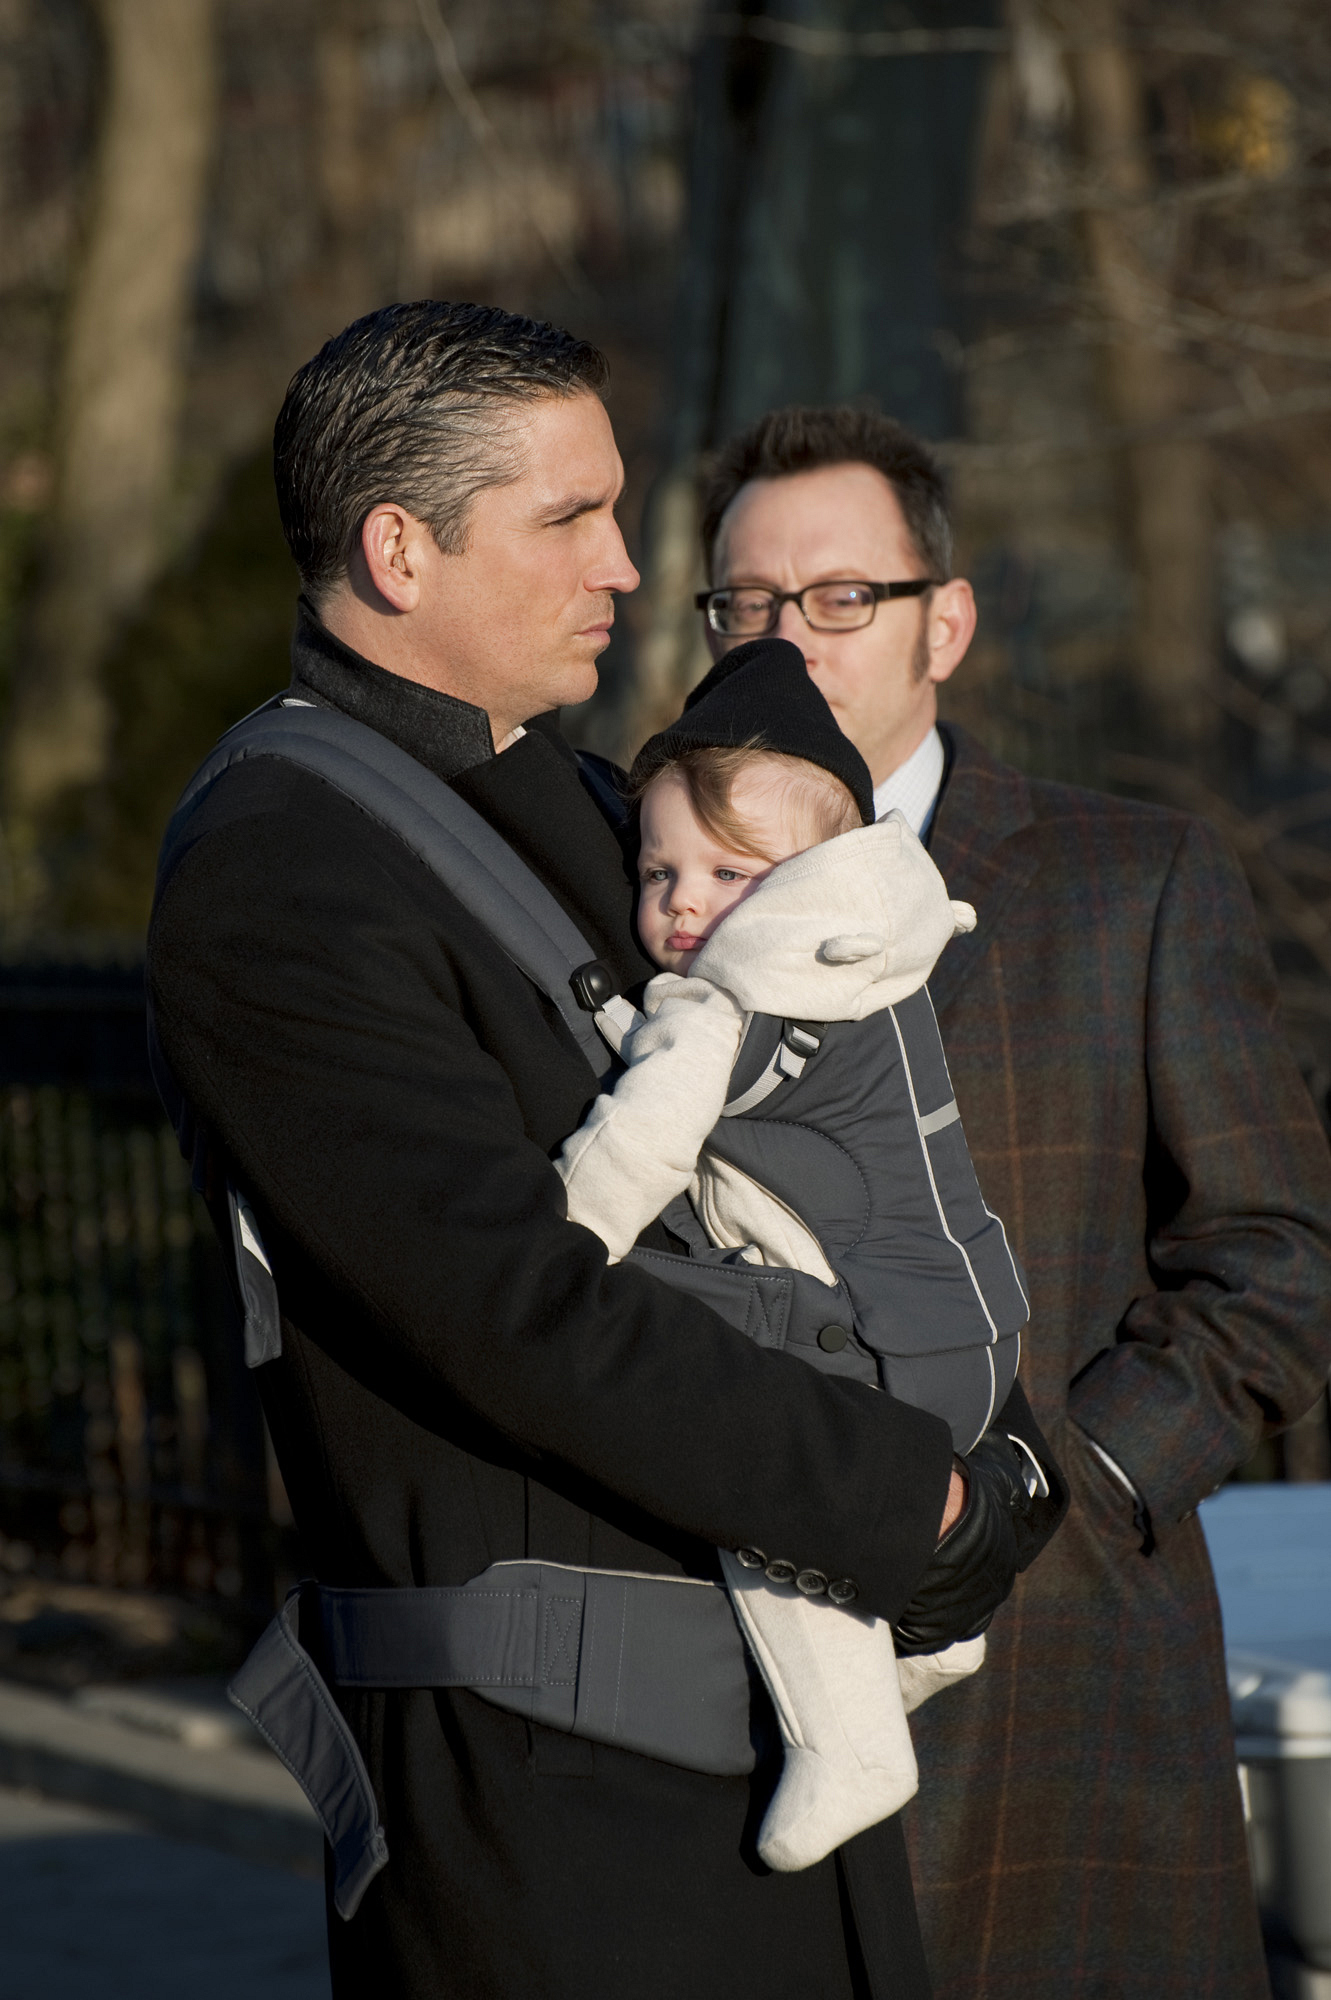 Reese and Finch with the baby